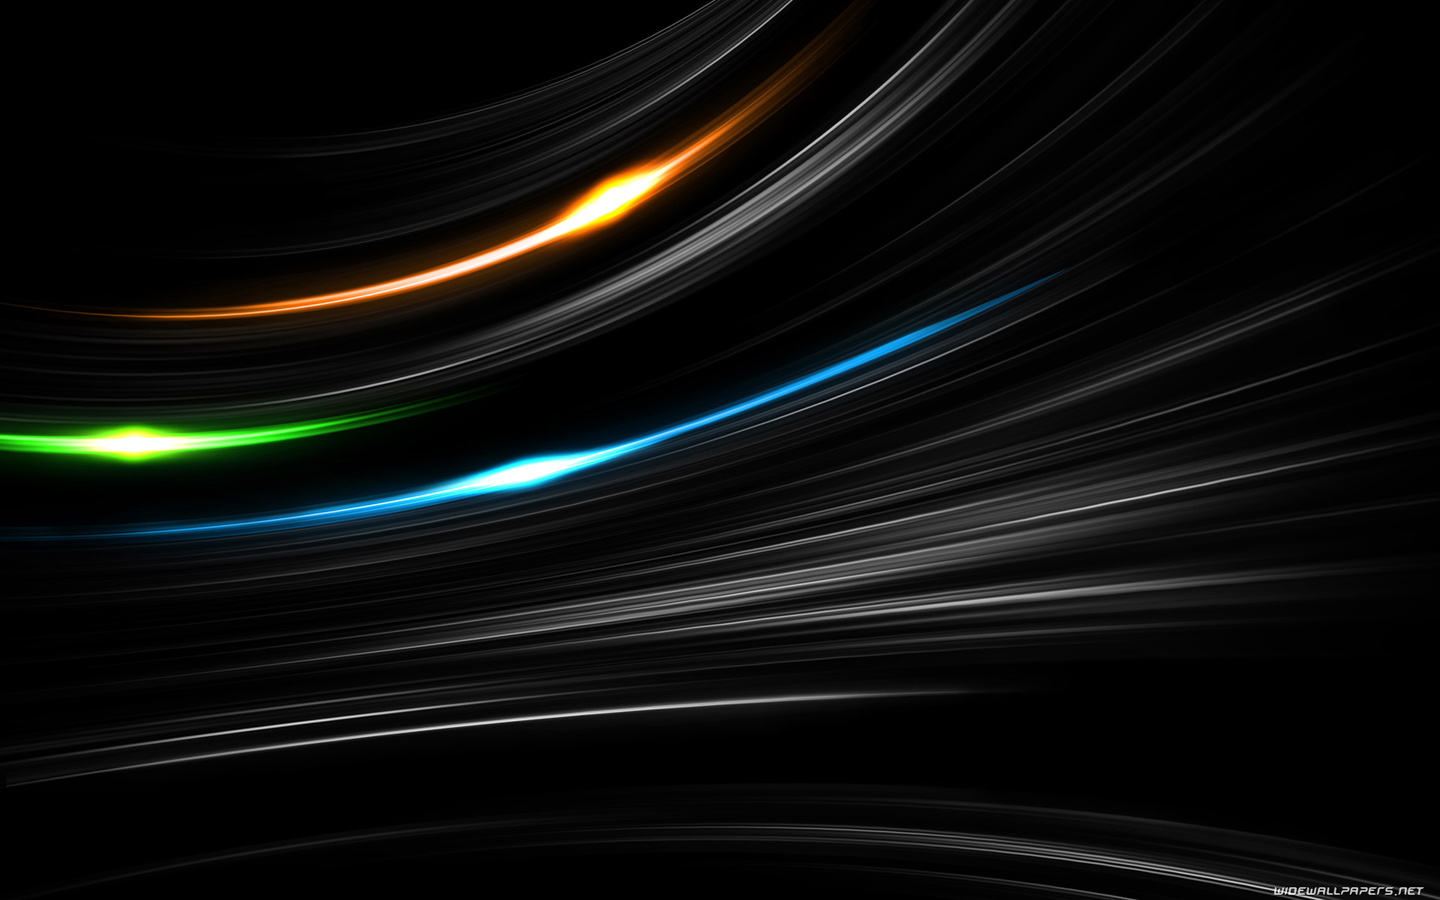 http://1.bp.blogspot.com/_IwbCppTeH0E/TJu17ey-vYI/AAAAAAAAAig/RQQ2m3g6QDM/s1600/color-lines-abstract-wide-wallpaper-1440x900-005.jpg